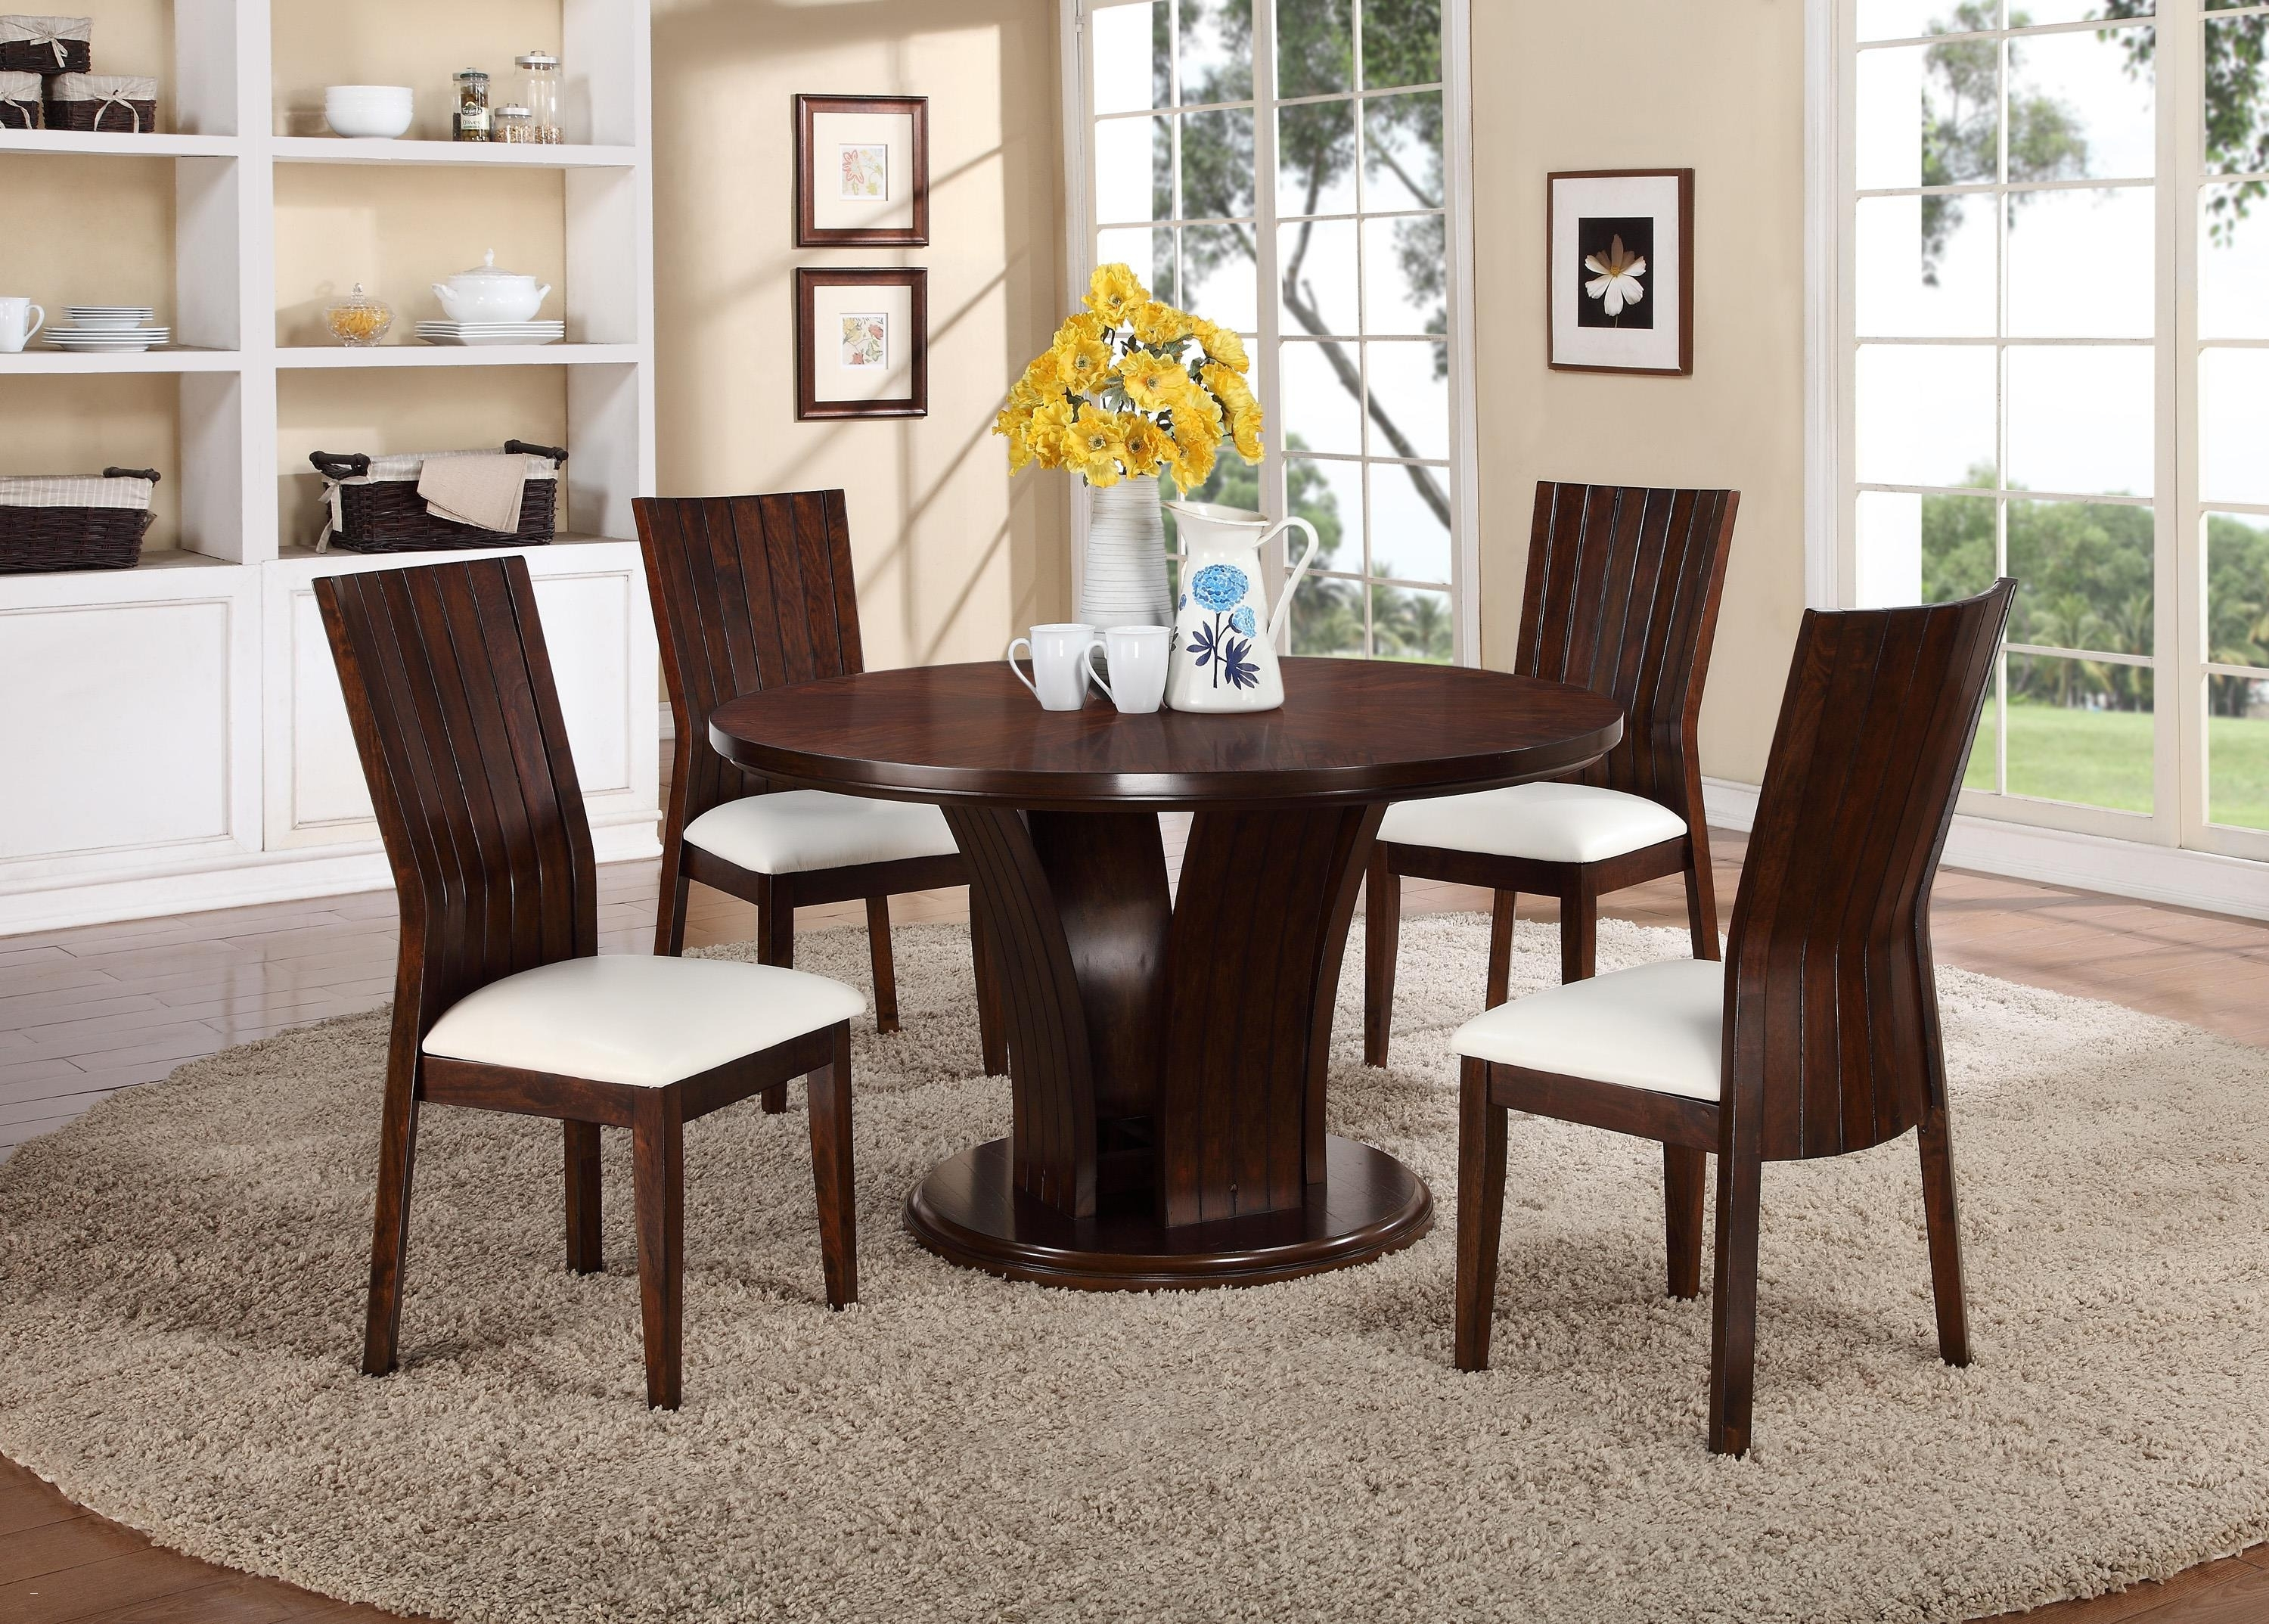 Fantastic Coralayne Dining Room Set Within Liberty Furniture Stone With Most Up To Date Cora 7 Piece Dining Sets (Image 14 of 20)